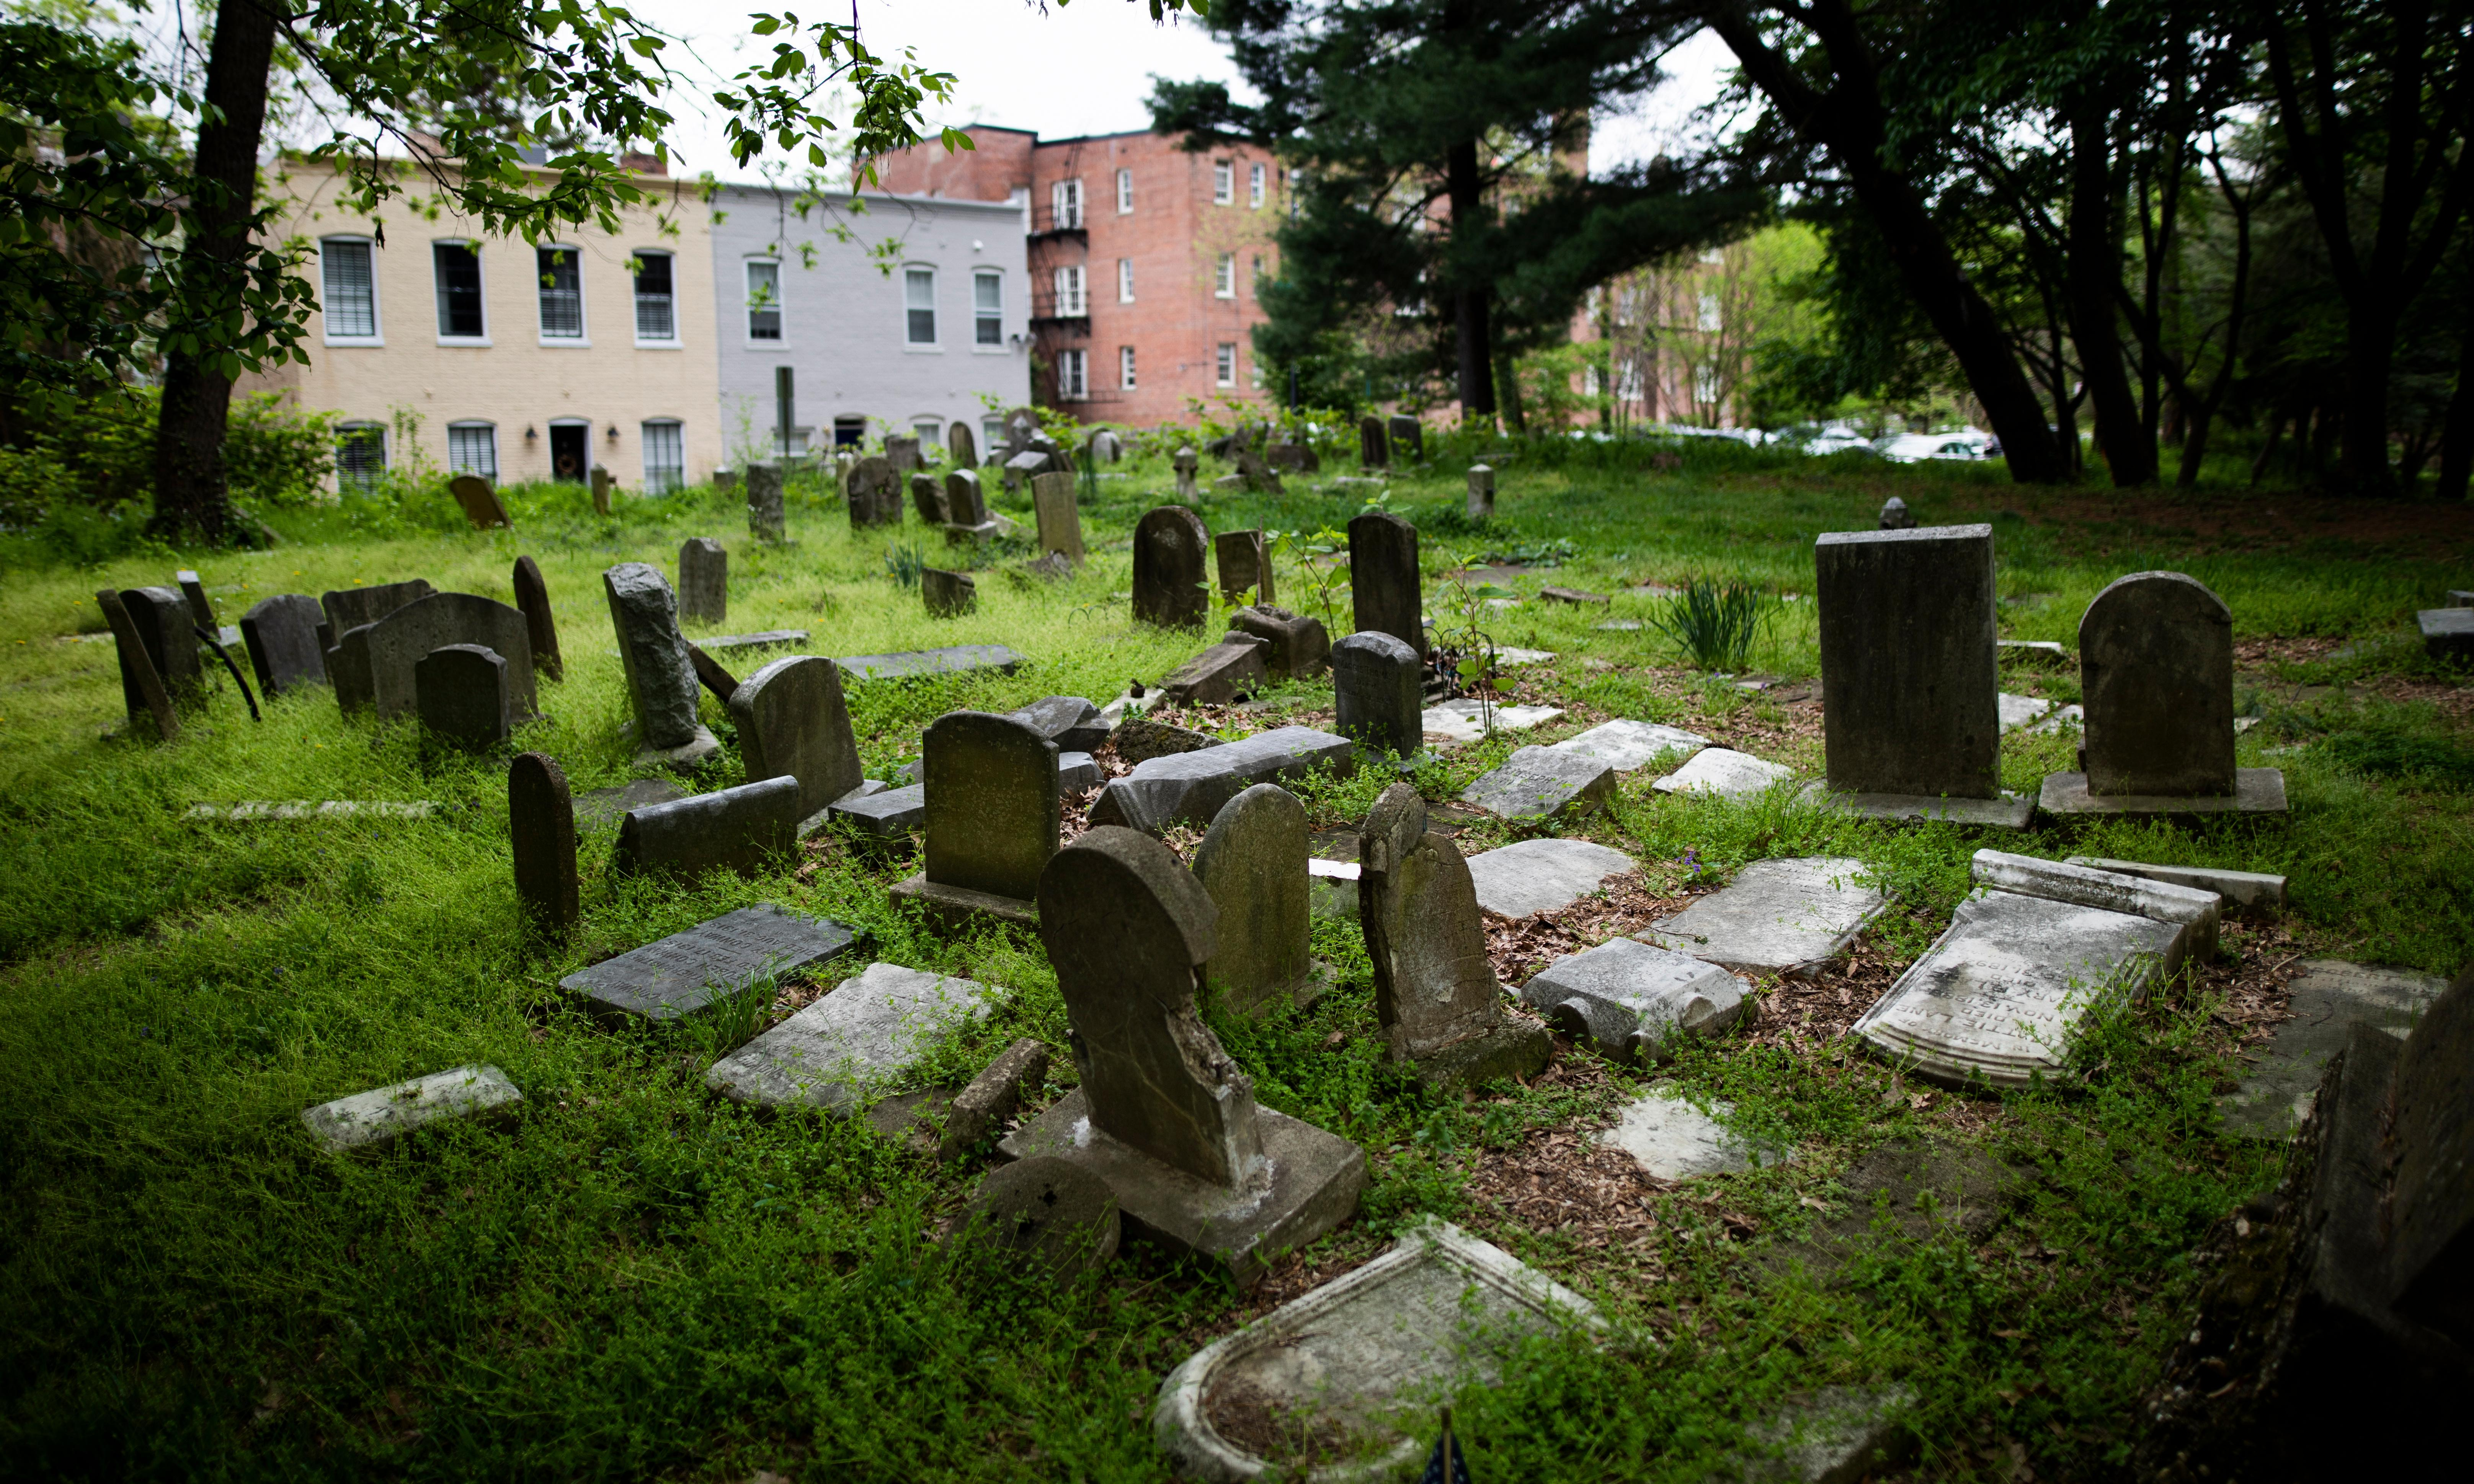 Gentrification is erasing black cemeteries and, with it, black history